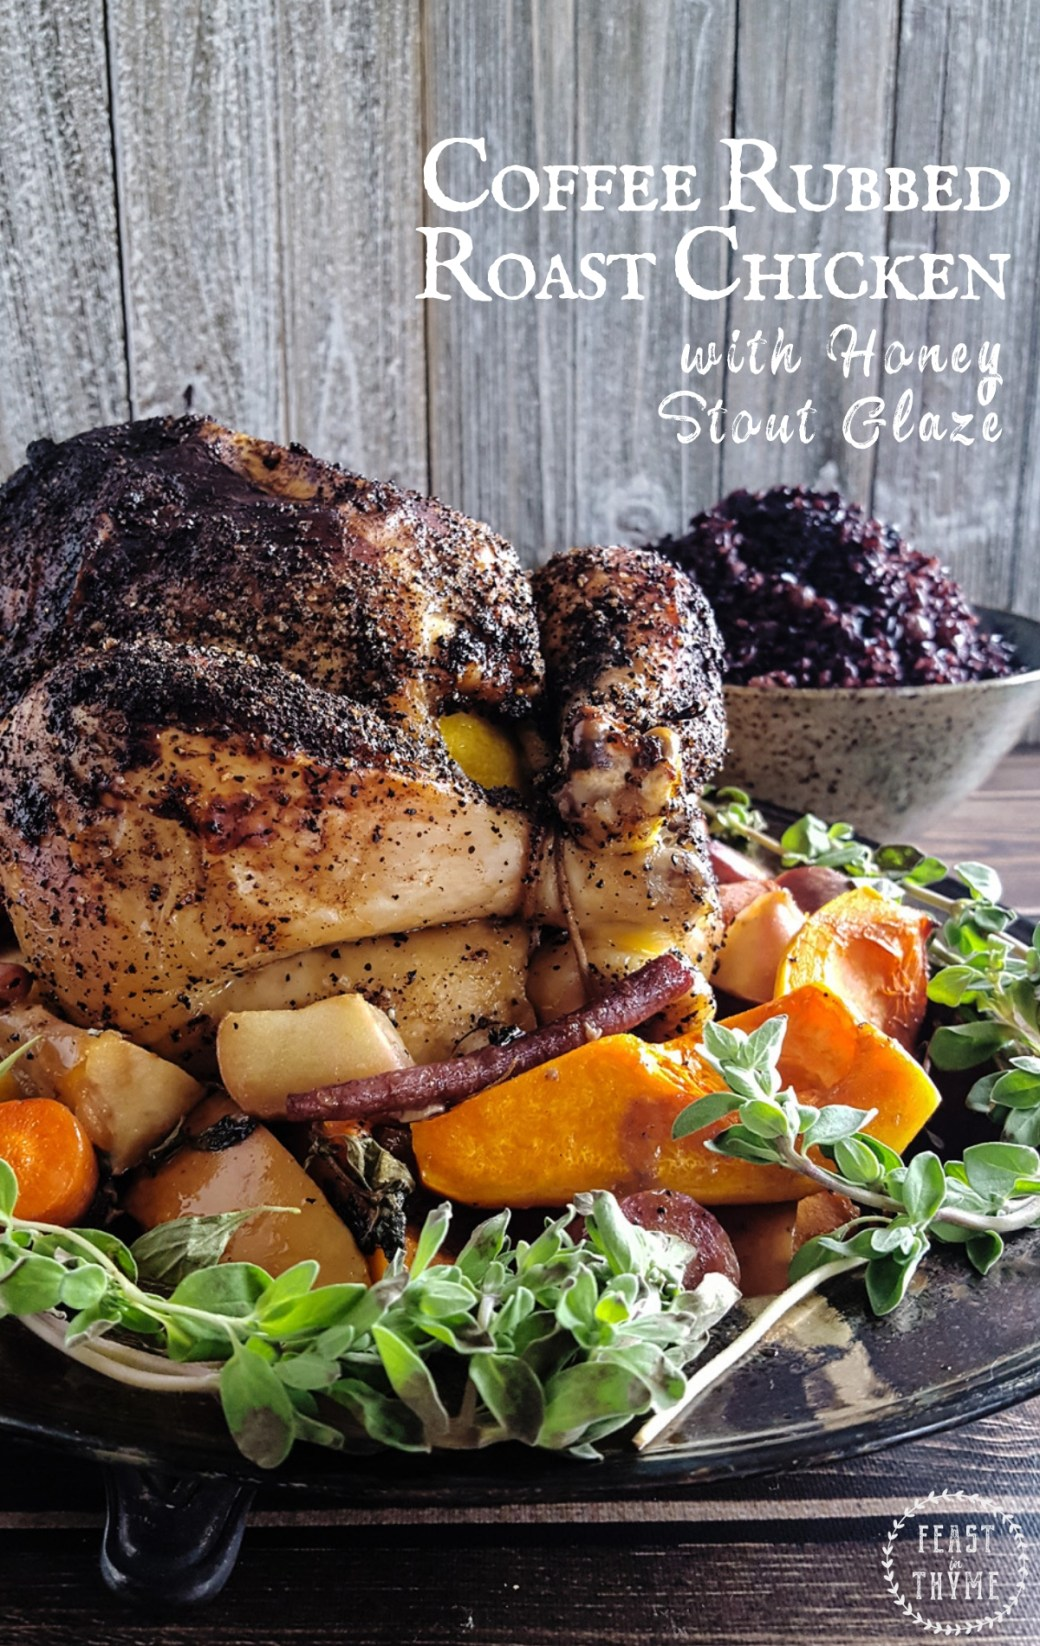 Succulent Coffee Rubbed Roast Chicken is smothered in sweet honey stout glaze and served on a bed of carrots & butternut squash. #fantasyfood #larpfood #roastchicken   FeastInThyme.com